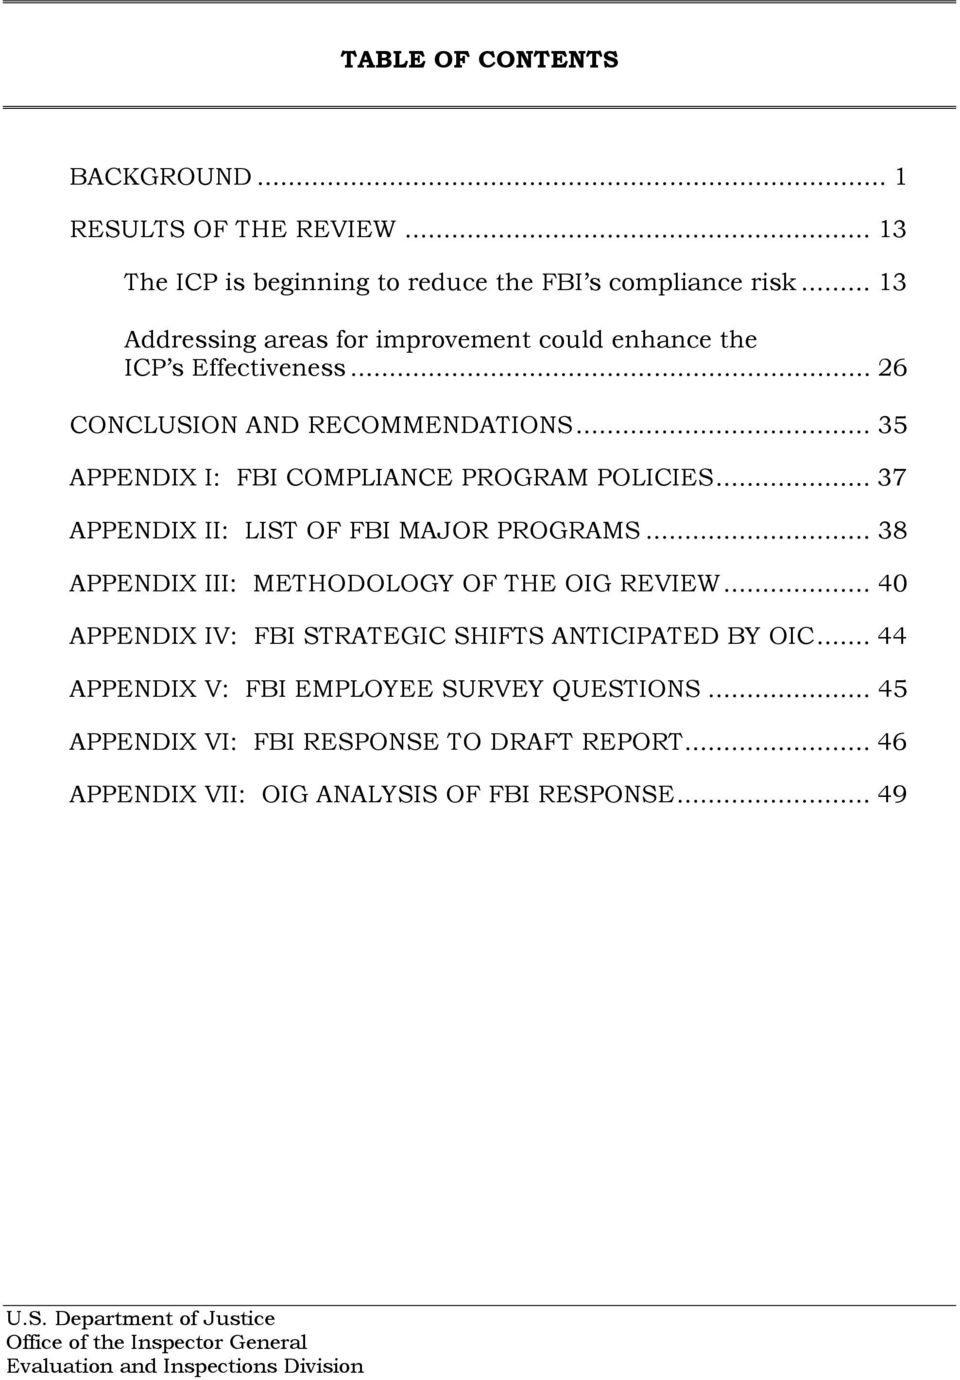 .. 35 APPENDIX I: FBI COMPLIANCE PROGRAM POLICIES... 37 APPENDIX II: LIST OF FBI MAJOR PROGRAMS... 38 APPENDIX III: METHODOLOGY OF THE OIG REVIEW.